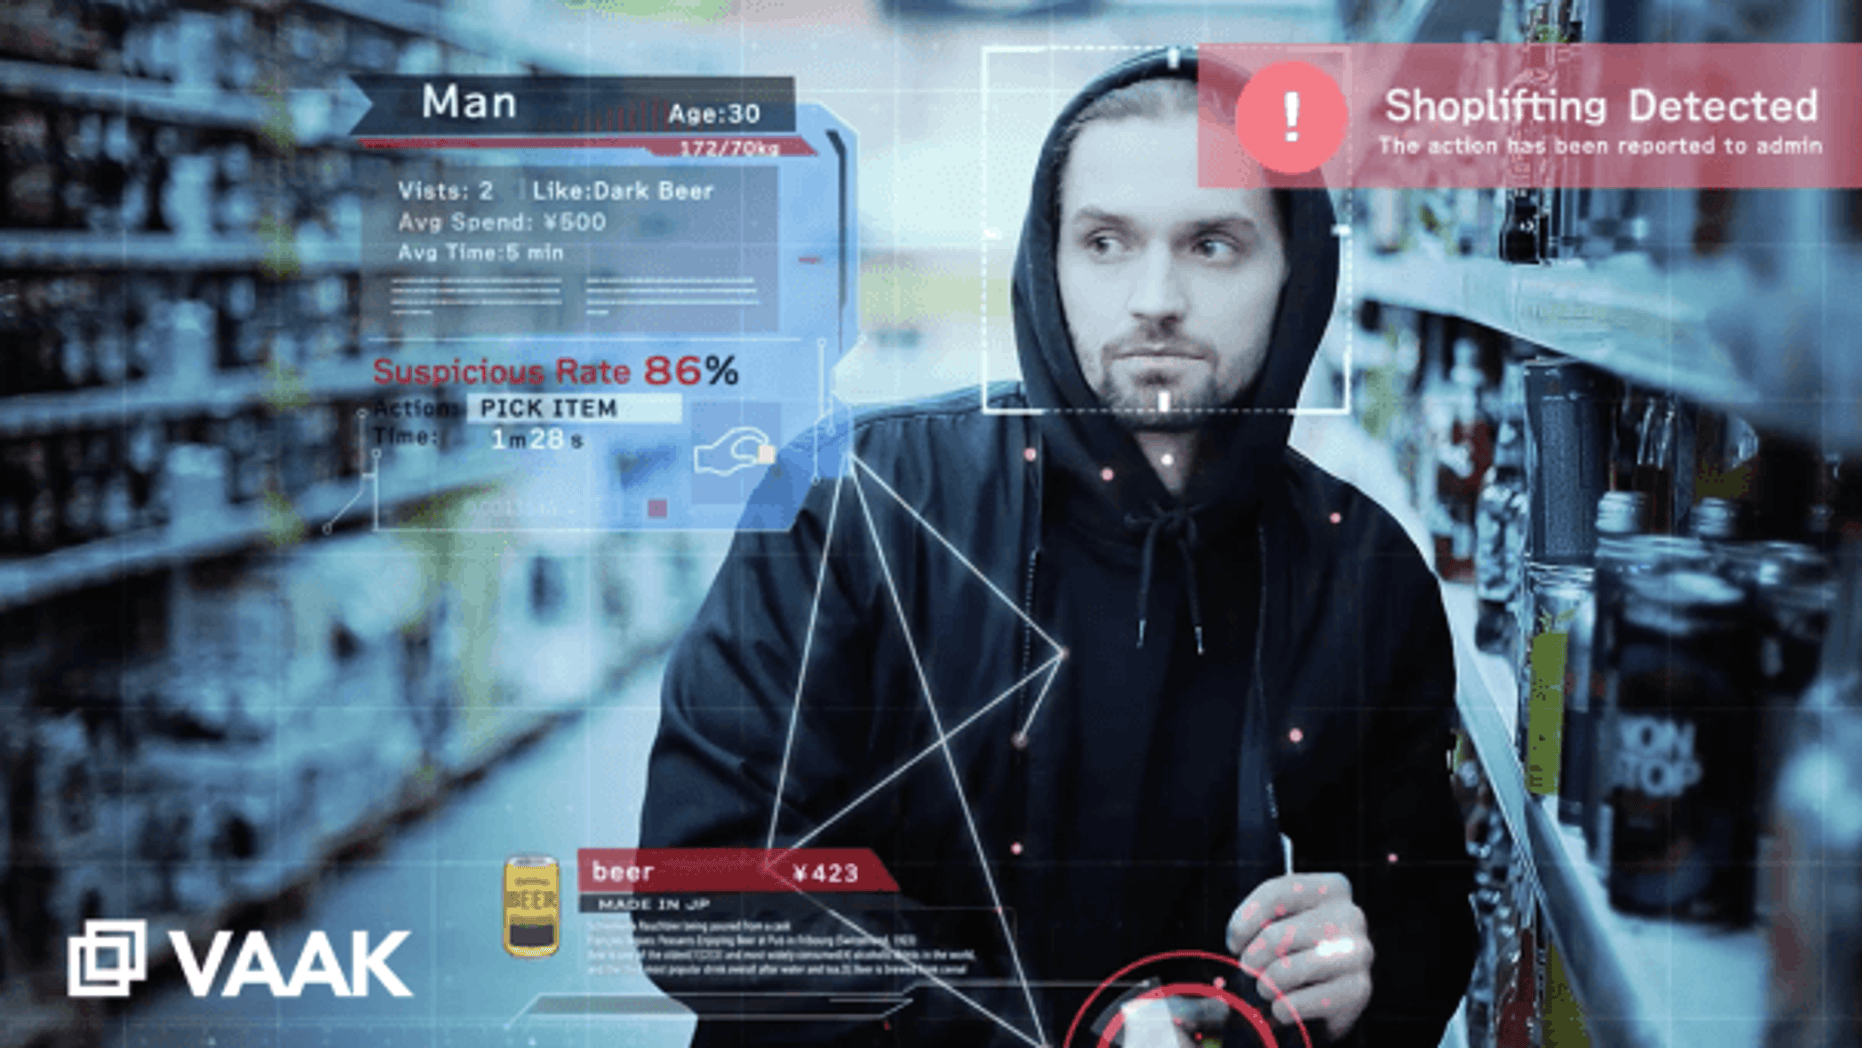 A Japanese company has developed software that can detect whether someone will steal before they actually do it.